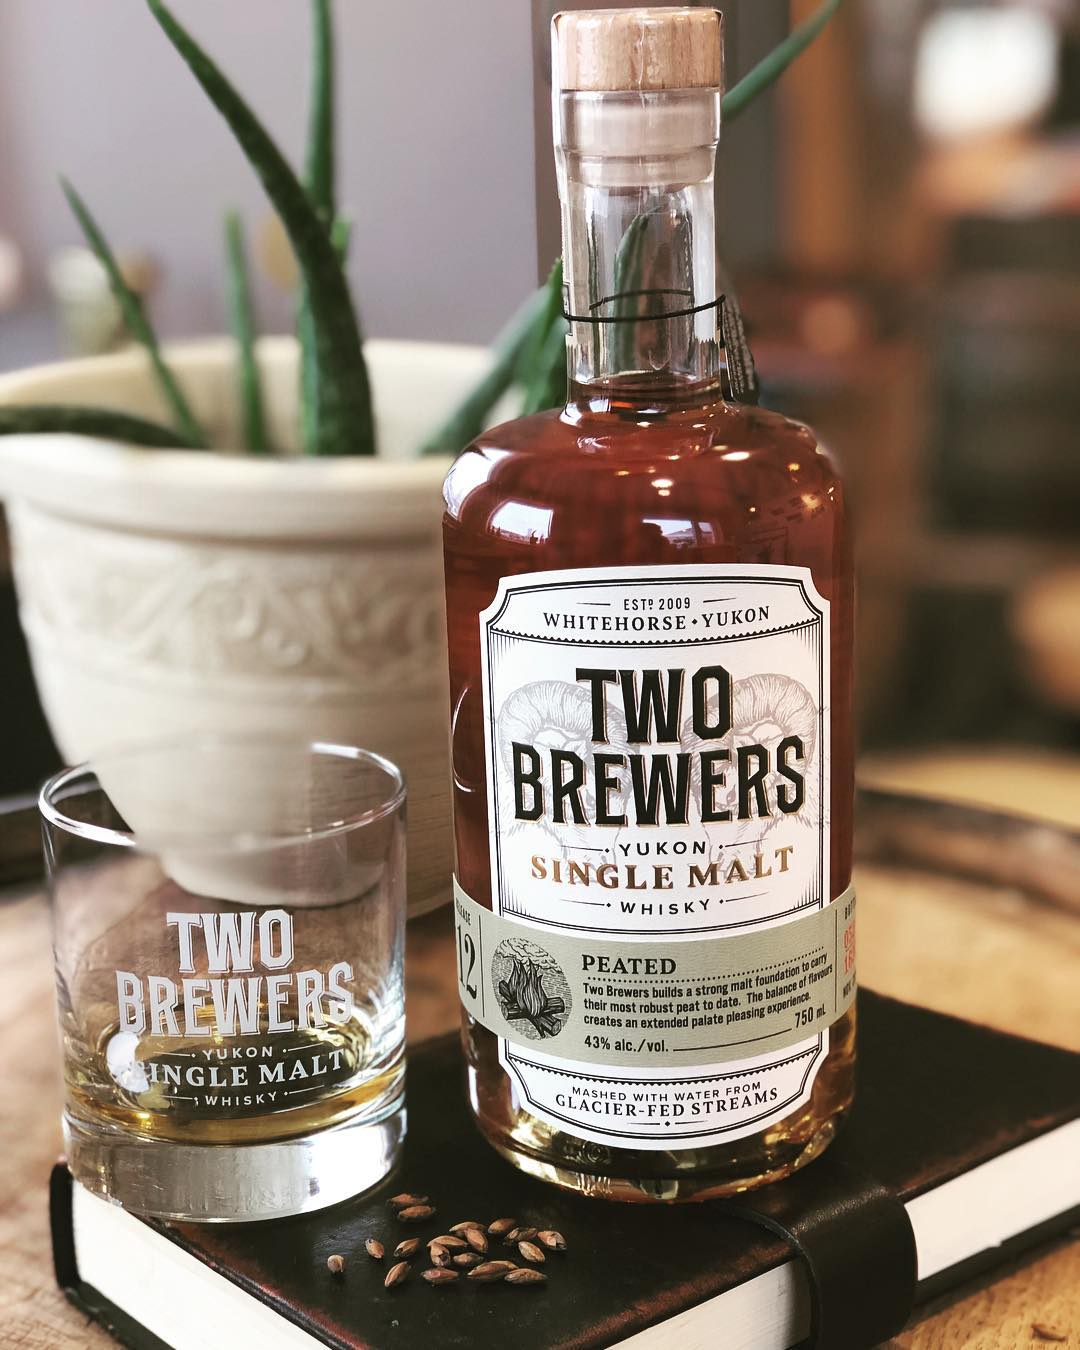 Two Brewers Yukon Single Malt Whisky